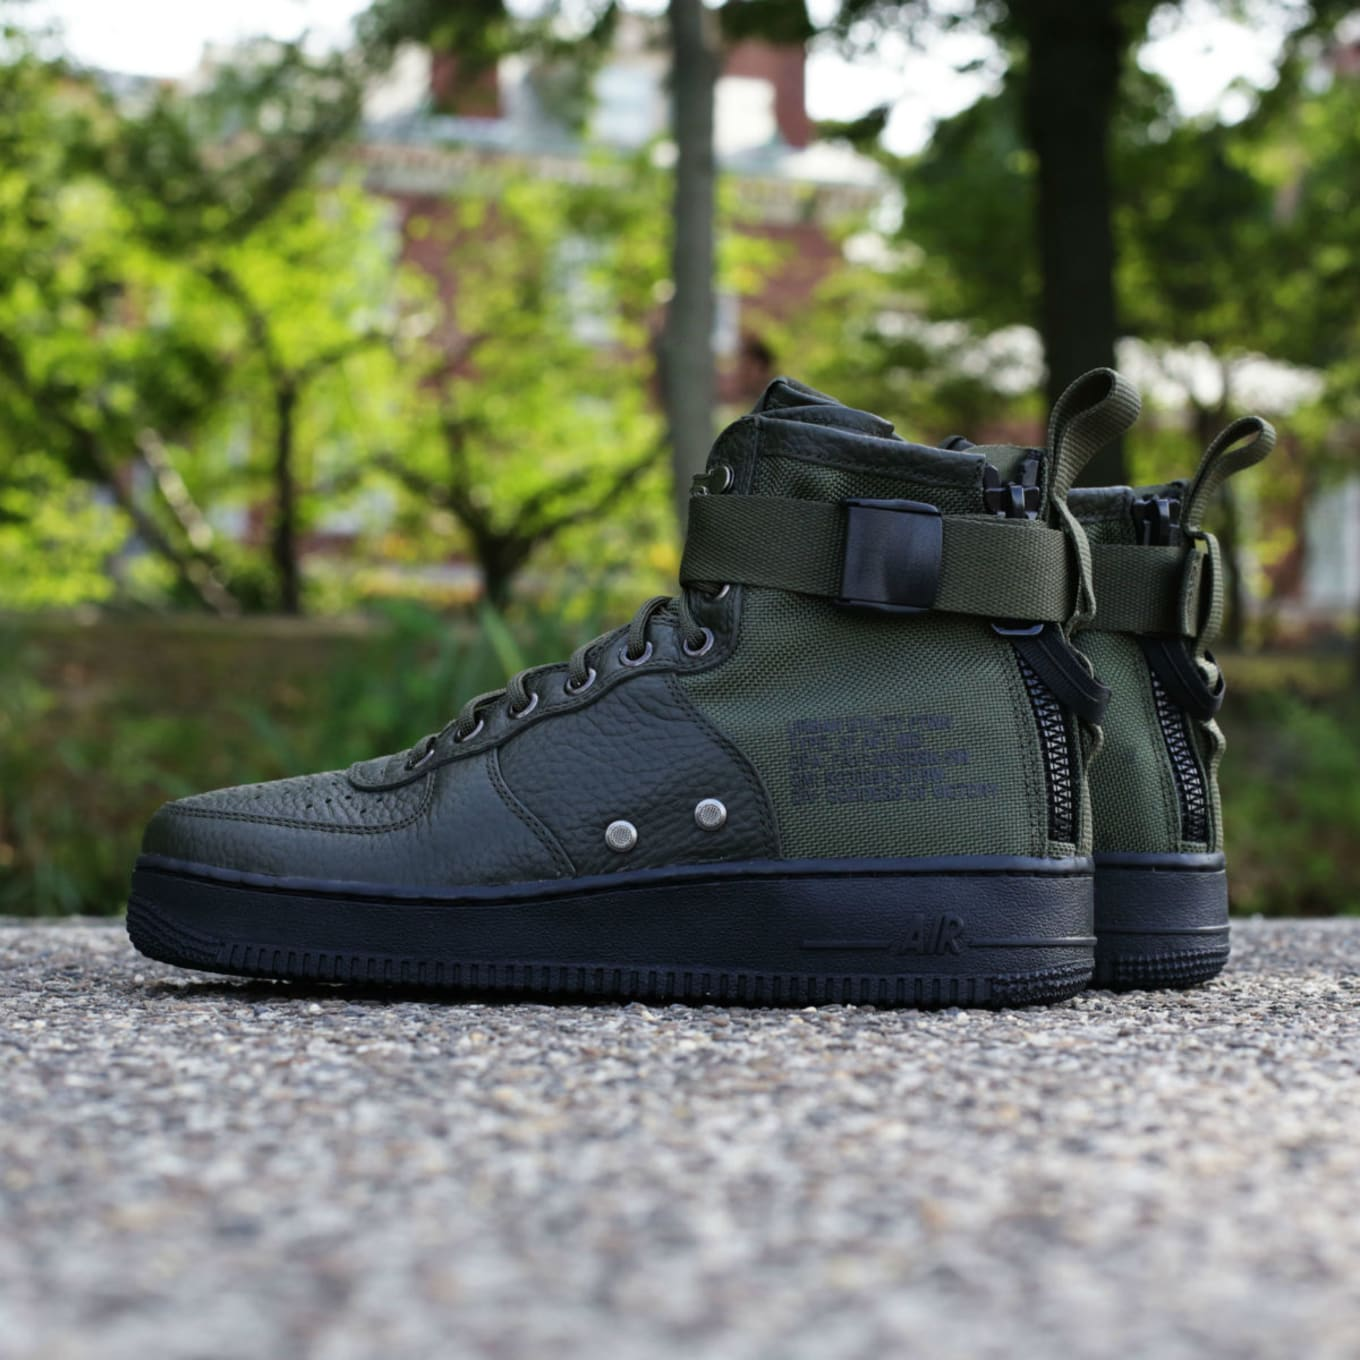 4de3c3dbcf Nike SF Air Force 1 Mid Sequoia Release Date 917753-300 | Sole Collector